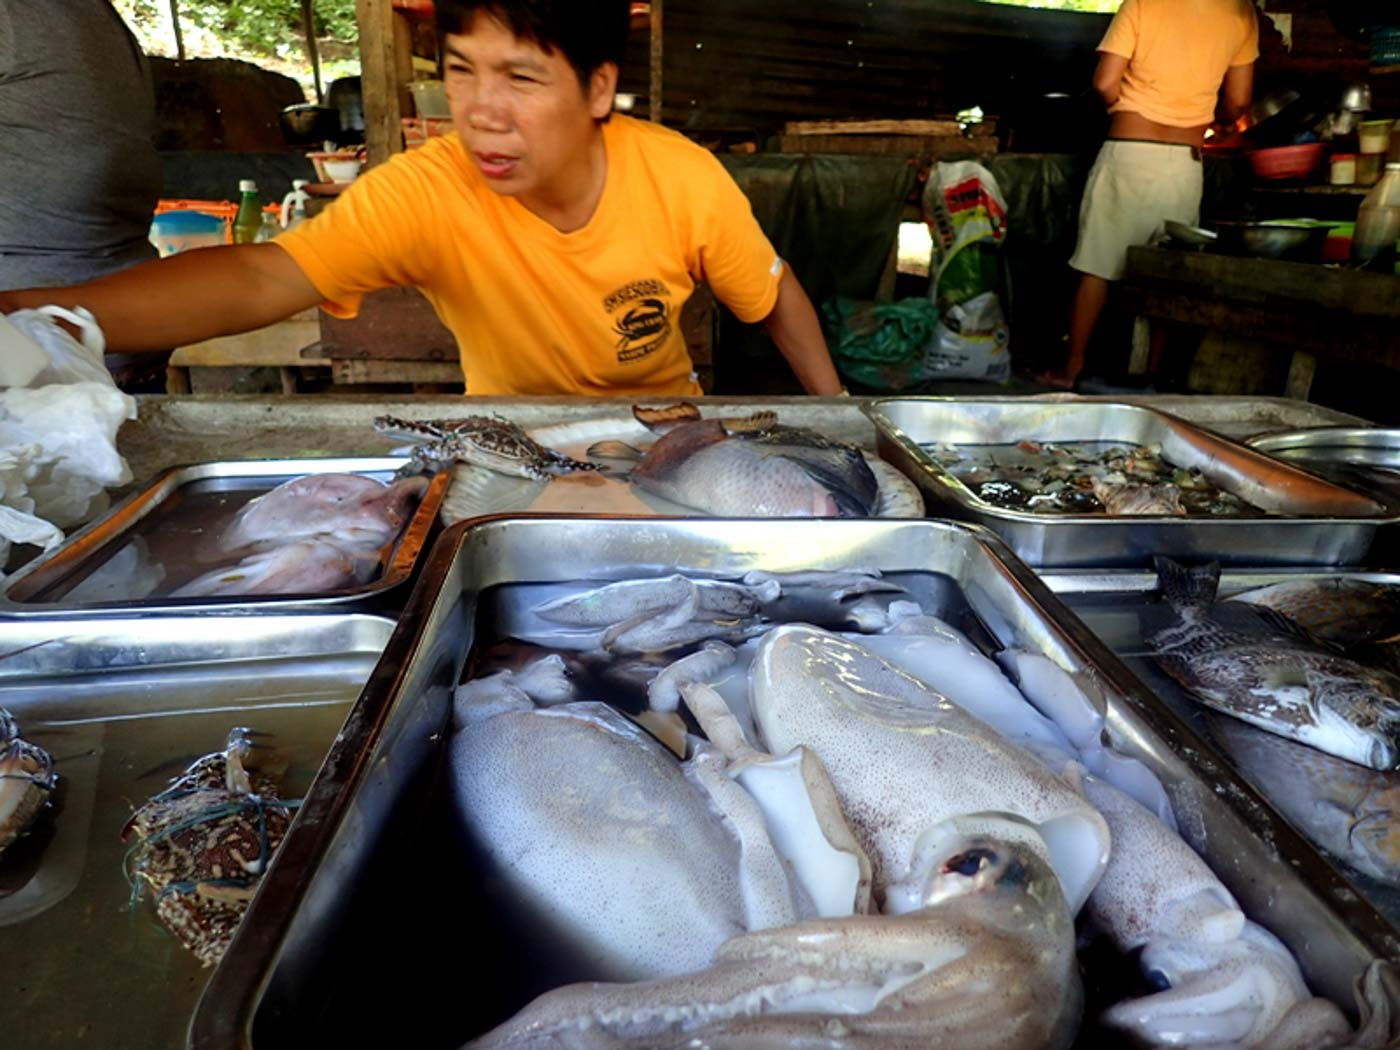 WET MARKET. At the new ticketing and dining area, downhill is the wet market where fresh catch for cooking is sold. Photo by Claire Madarang/Rappler